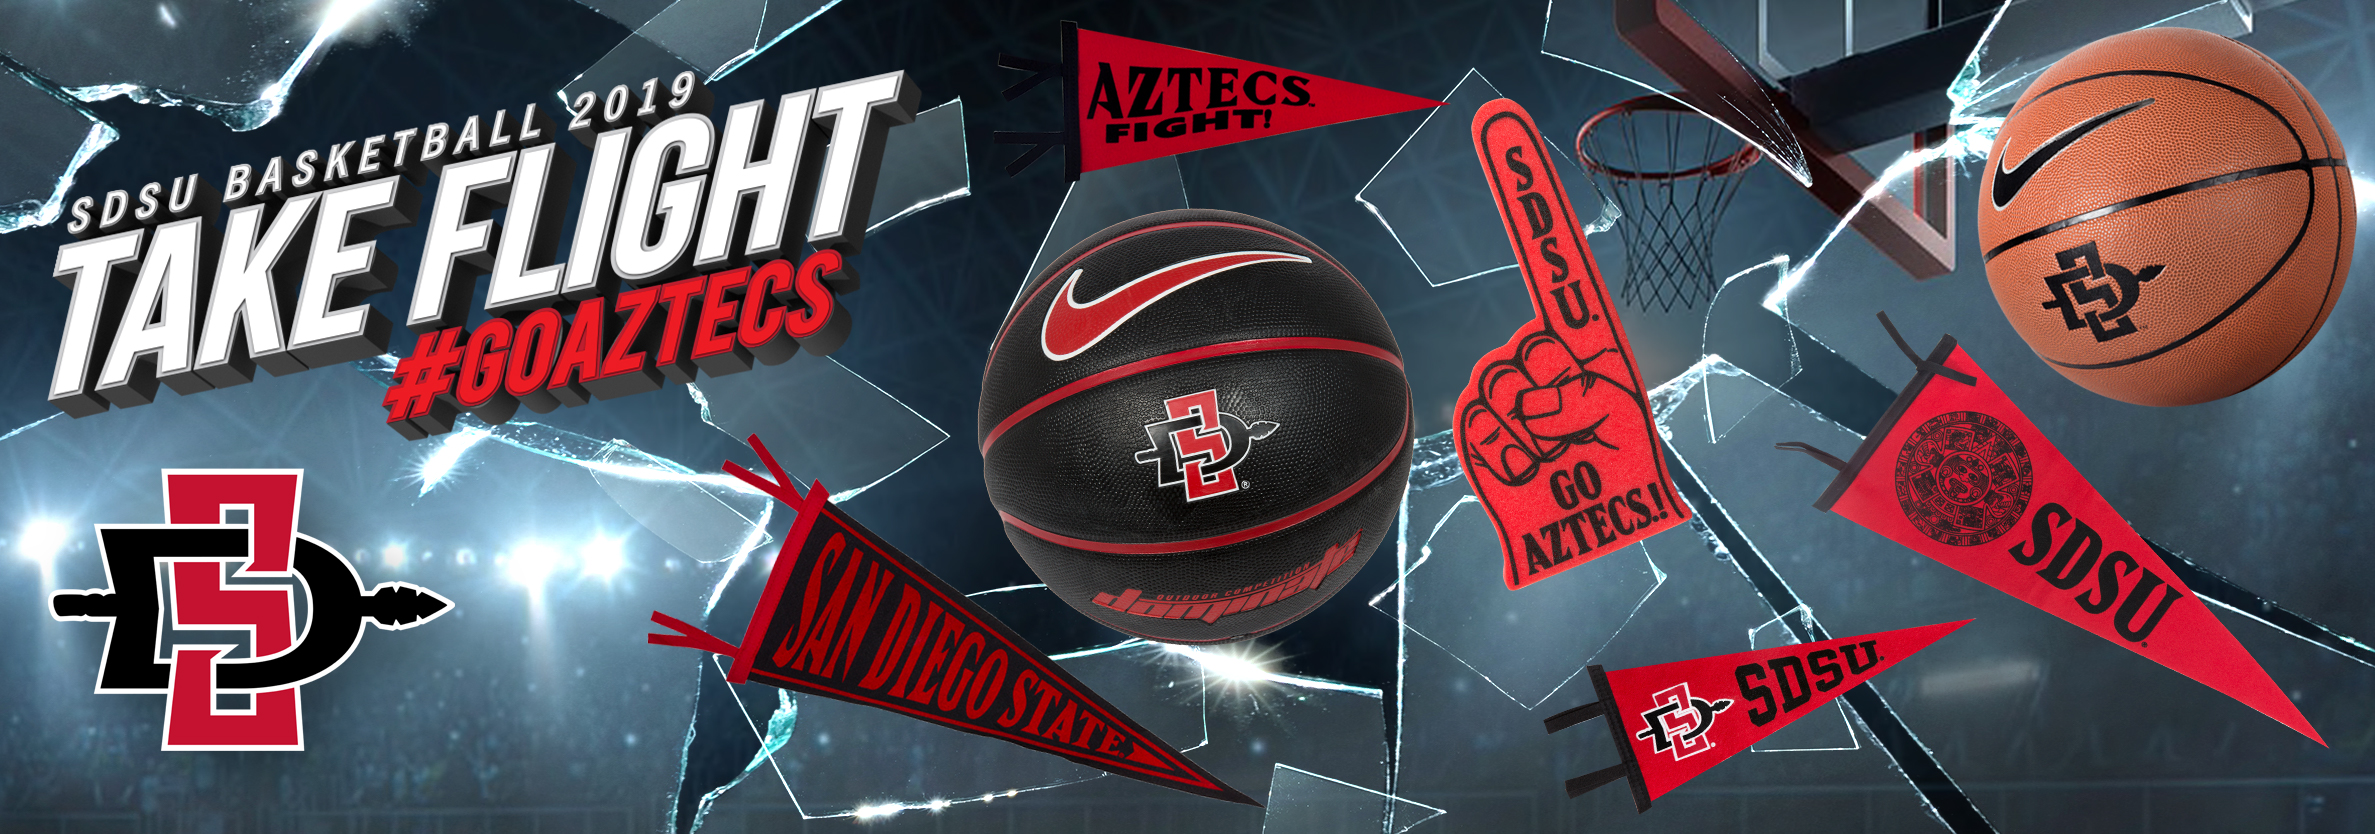 SDSU Basketball 2019. Take Flight. #GOAZTECS